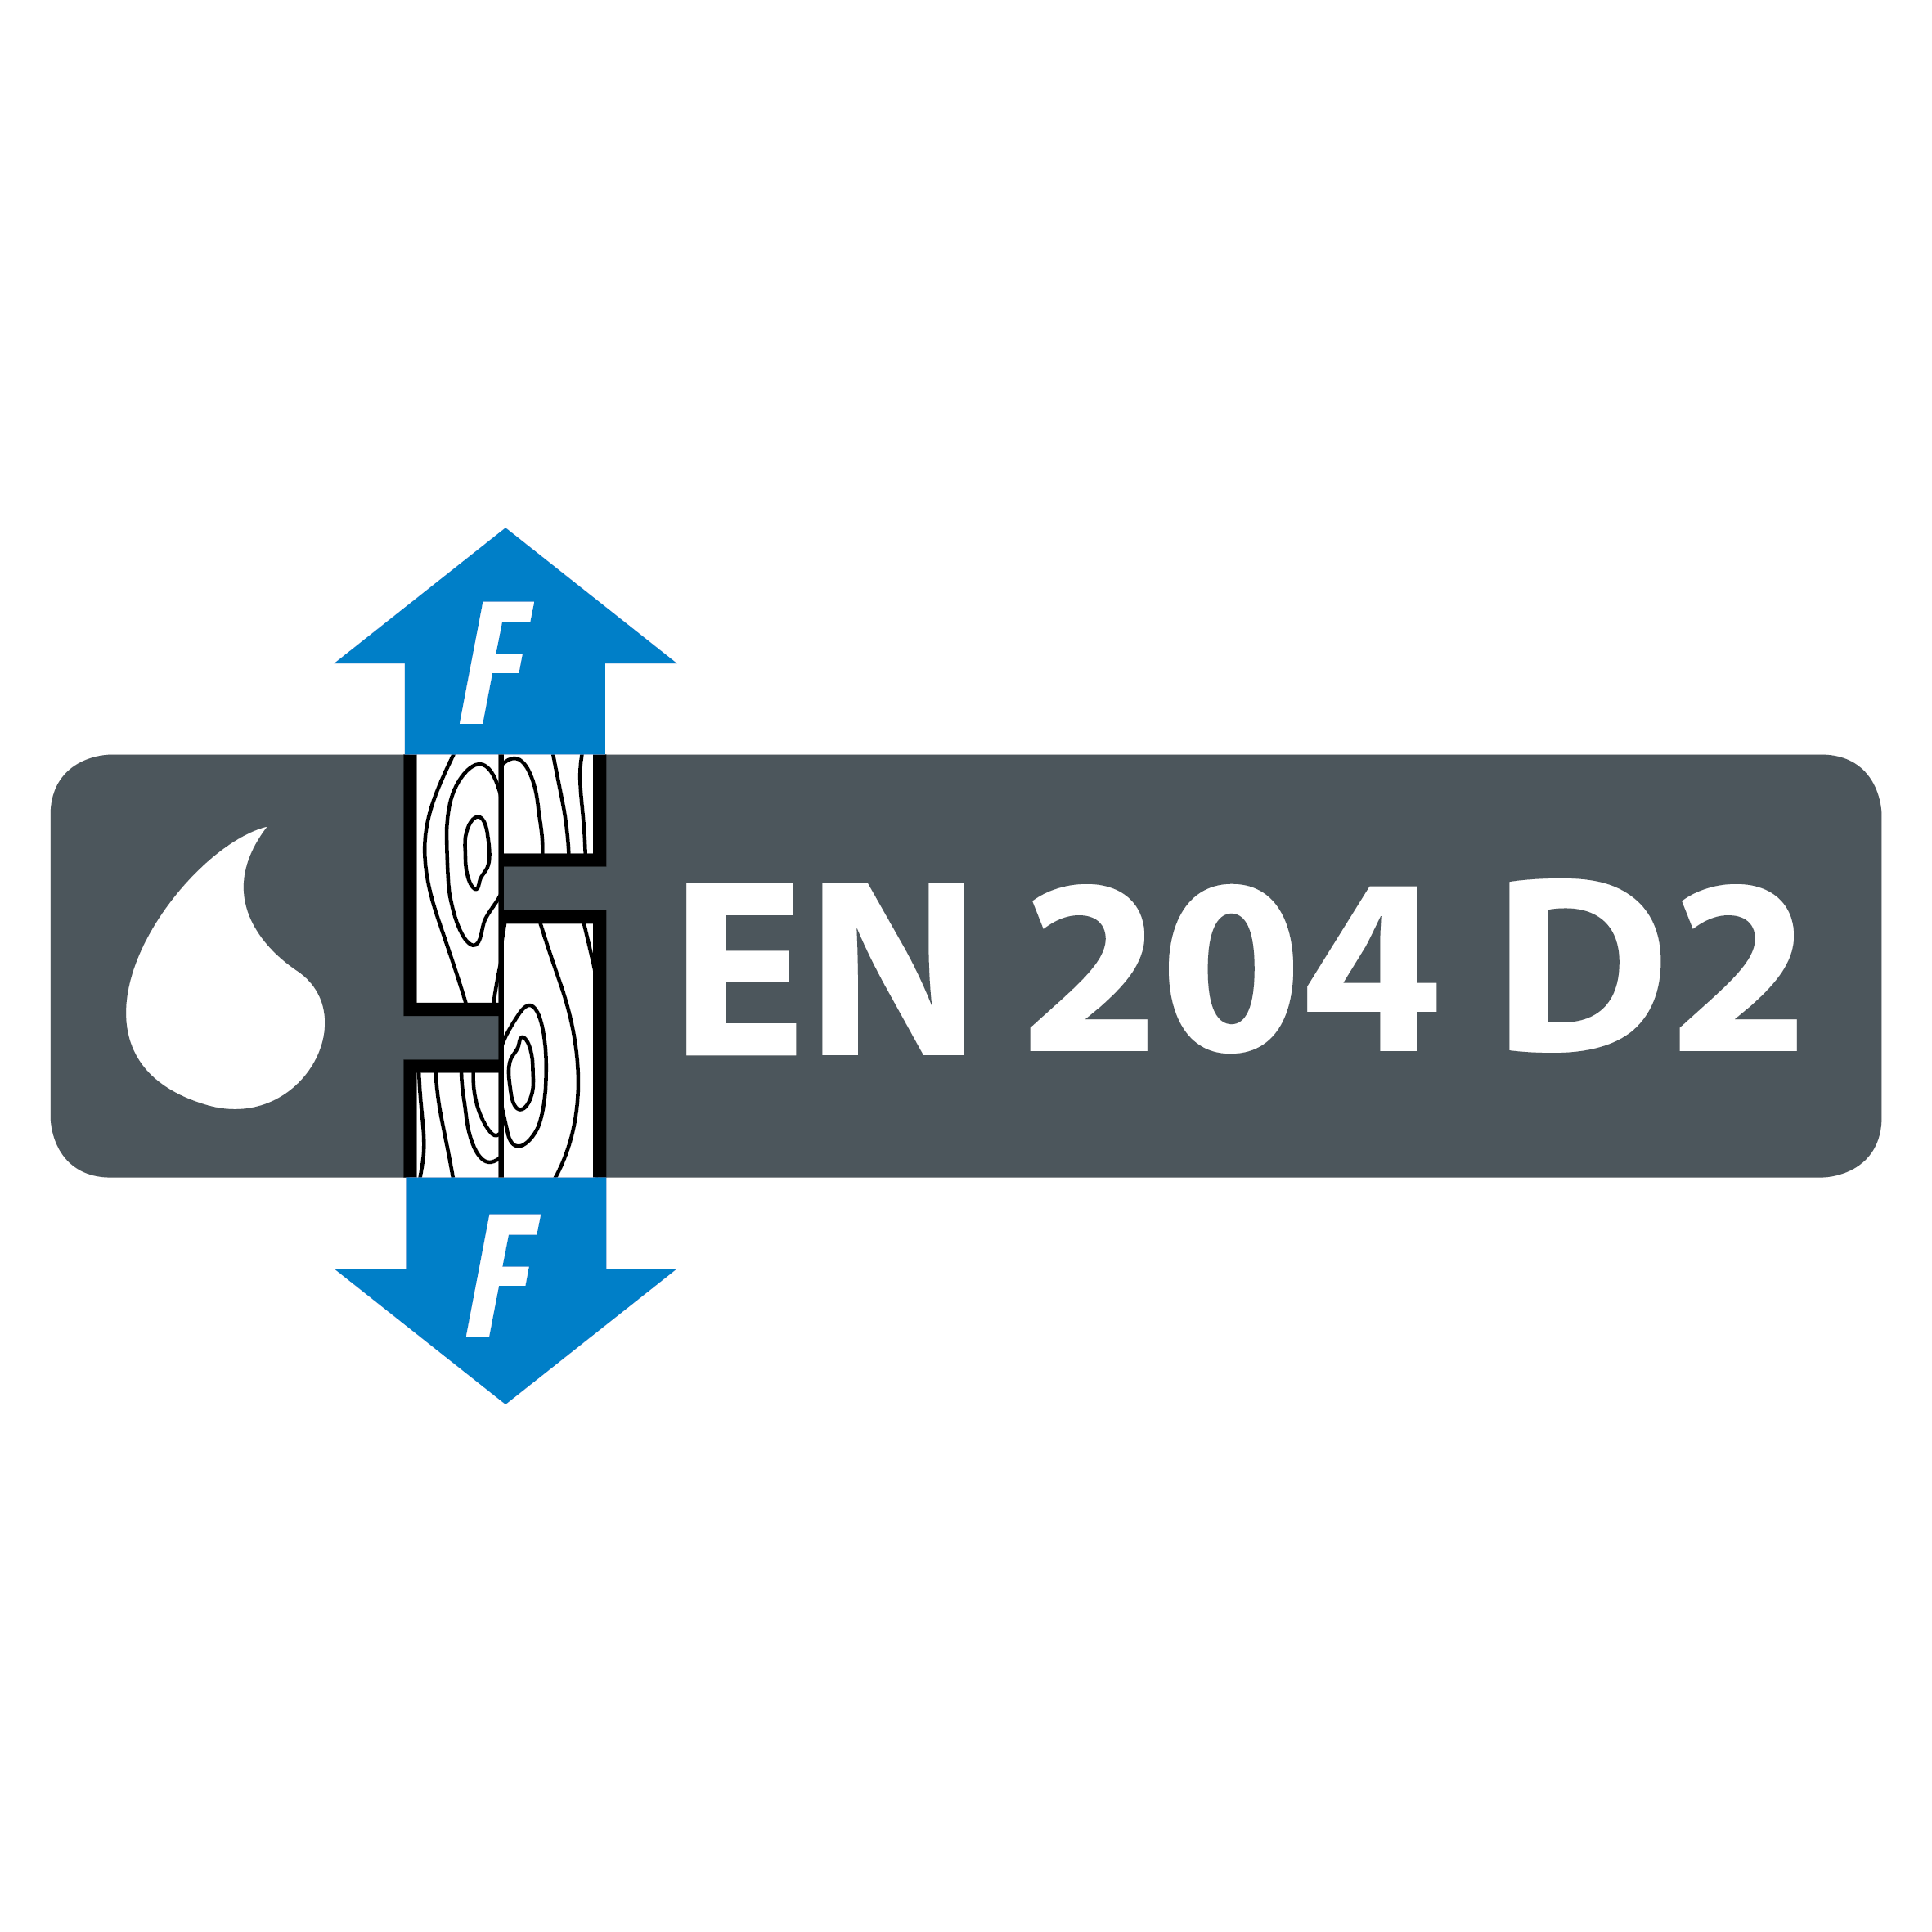 EN 204 D2 water resistance classification